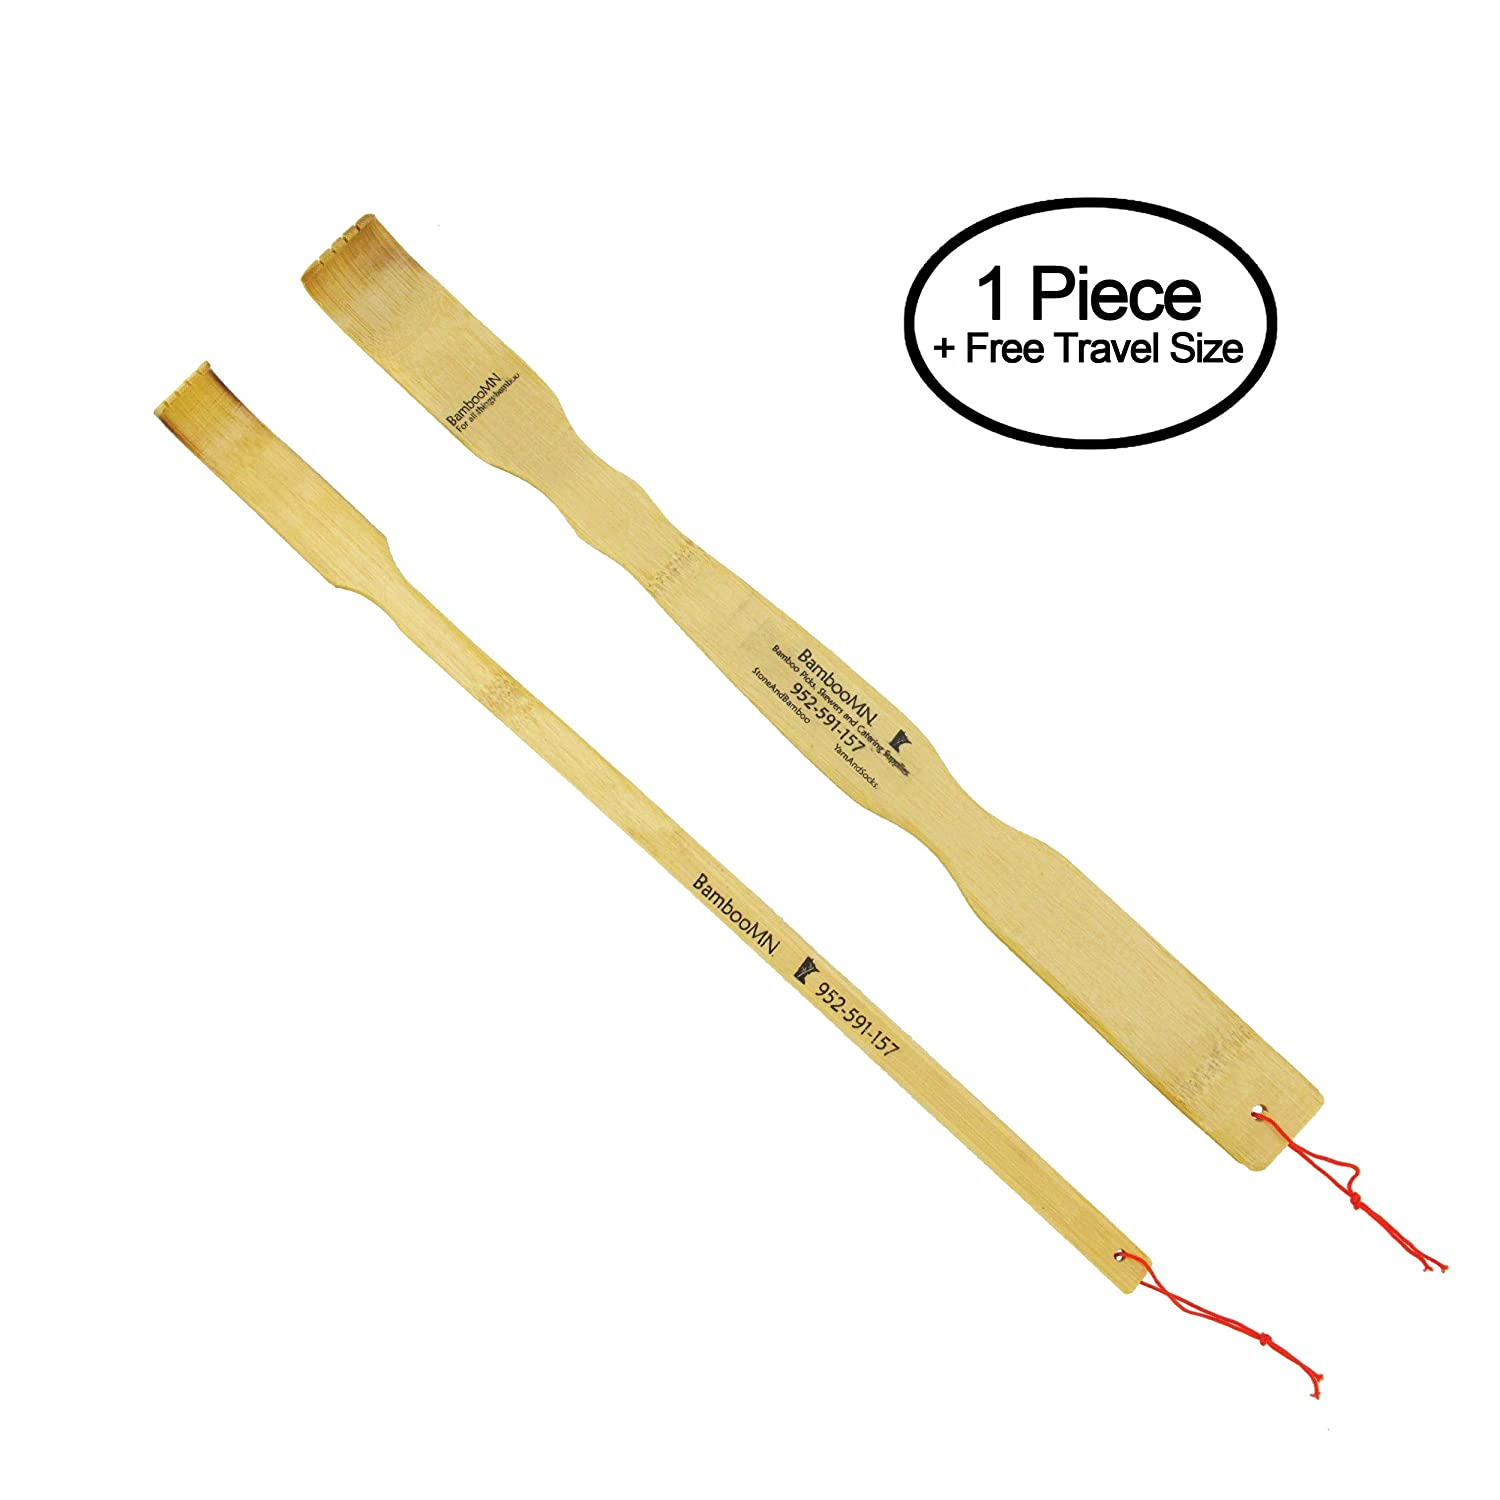 BambooMN Brand - 17 Bamboo Backscratchers + Free Travel Size Backscratcher t02-5001